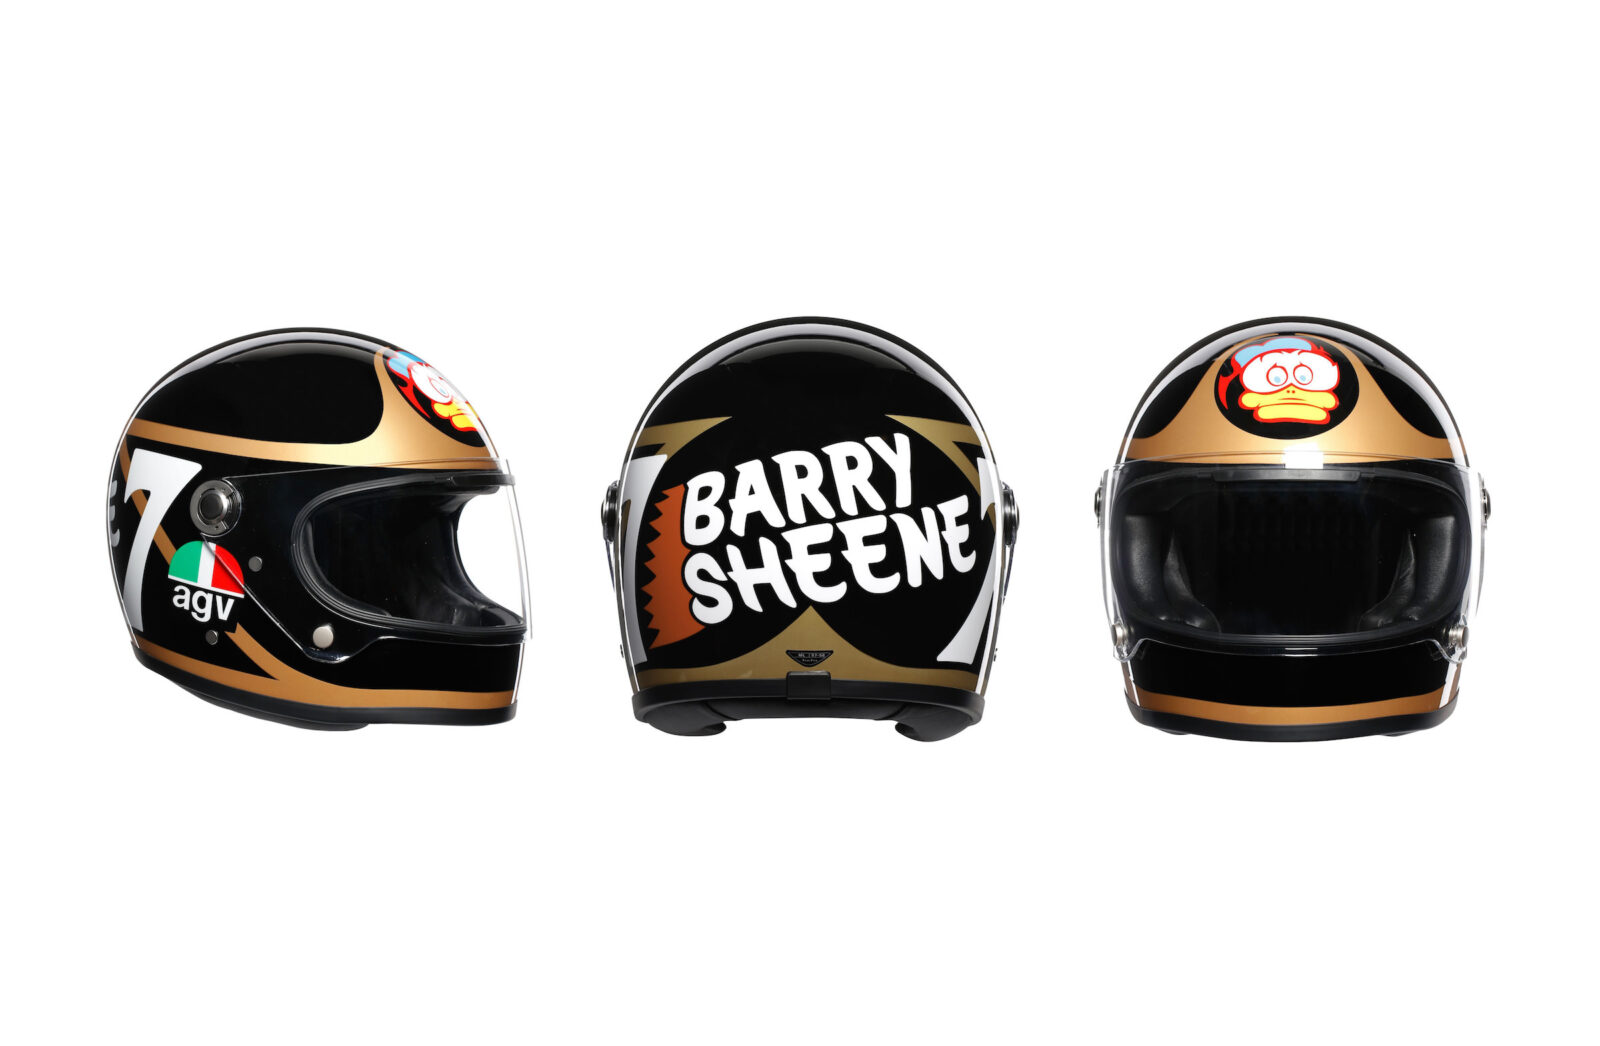 AGV X3000 Barry Sheene Helmets